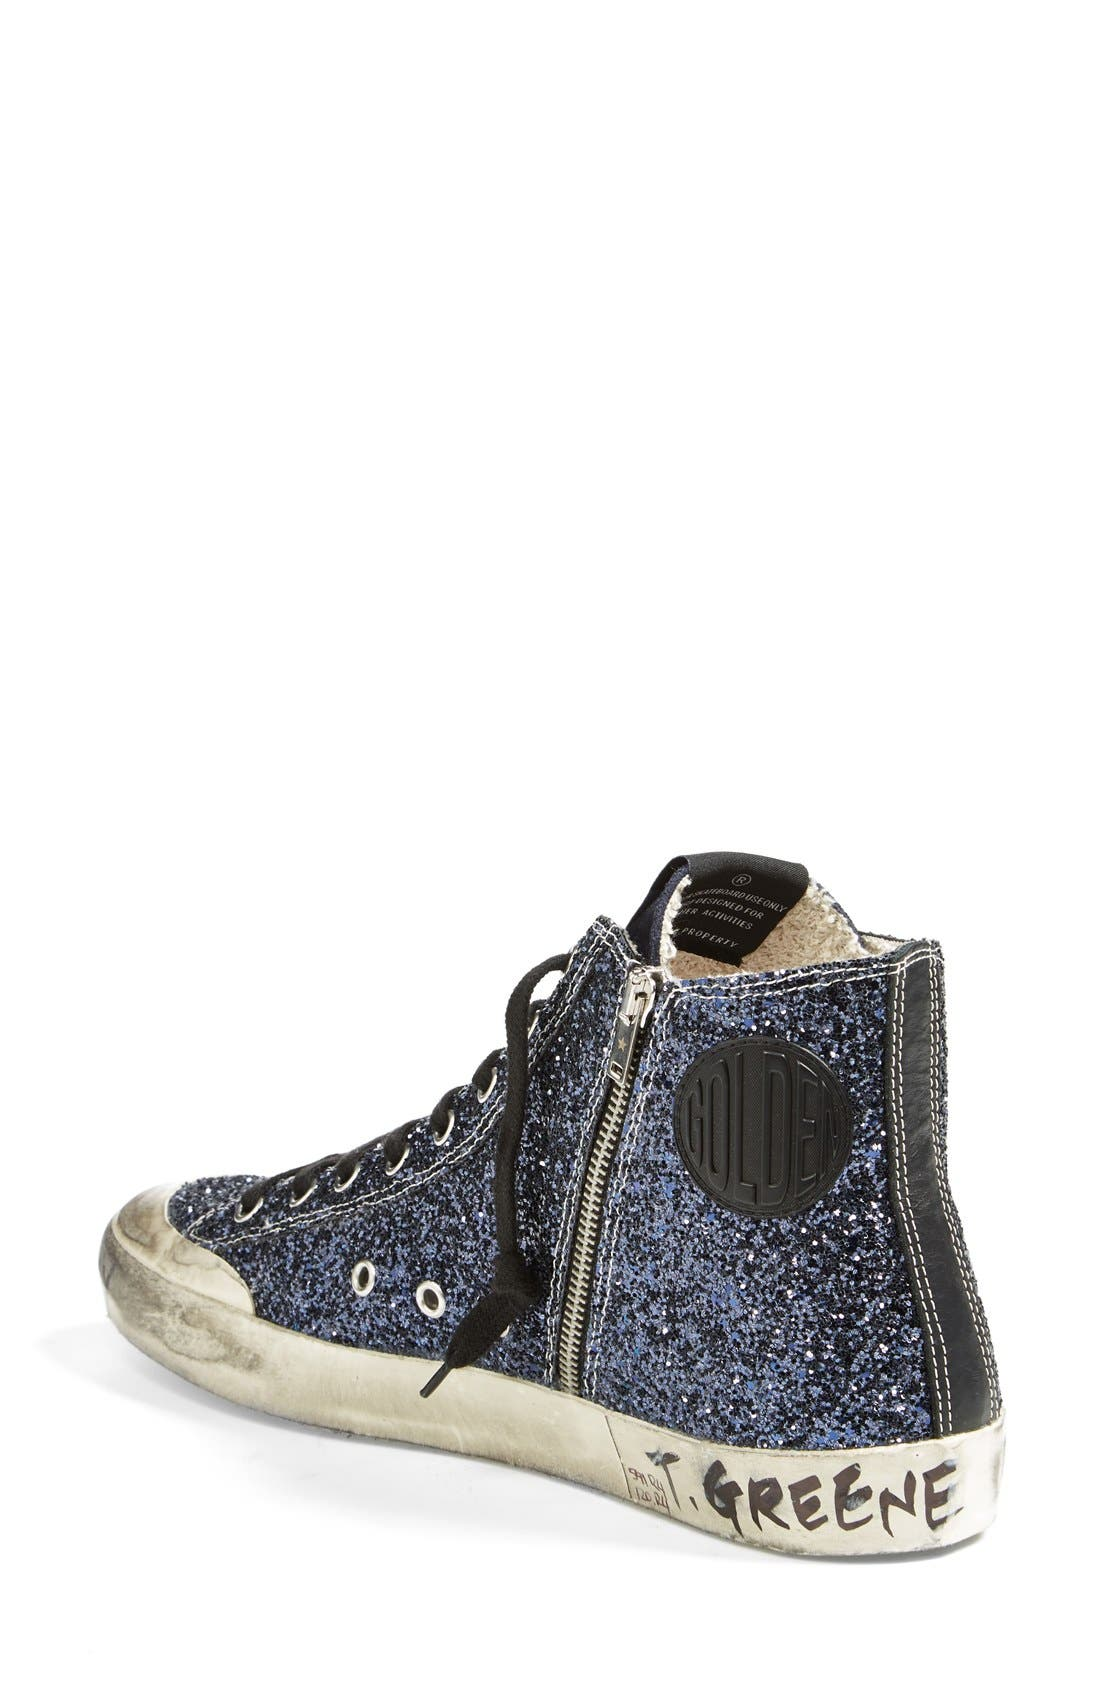 Alternate Image 2  - Golden Goose 'Francy' Sneaker (Women)